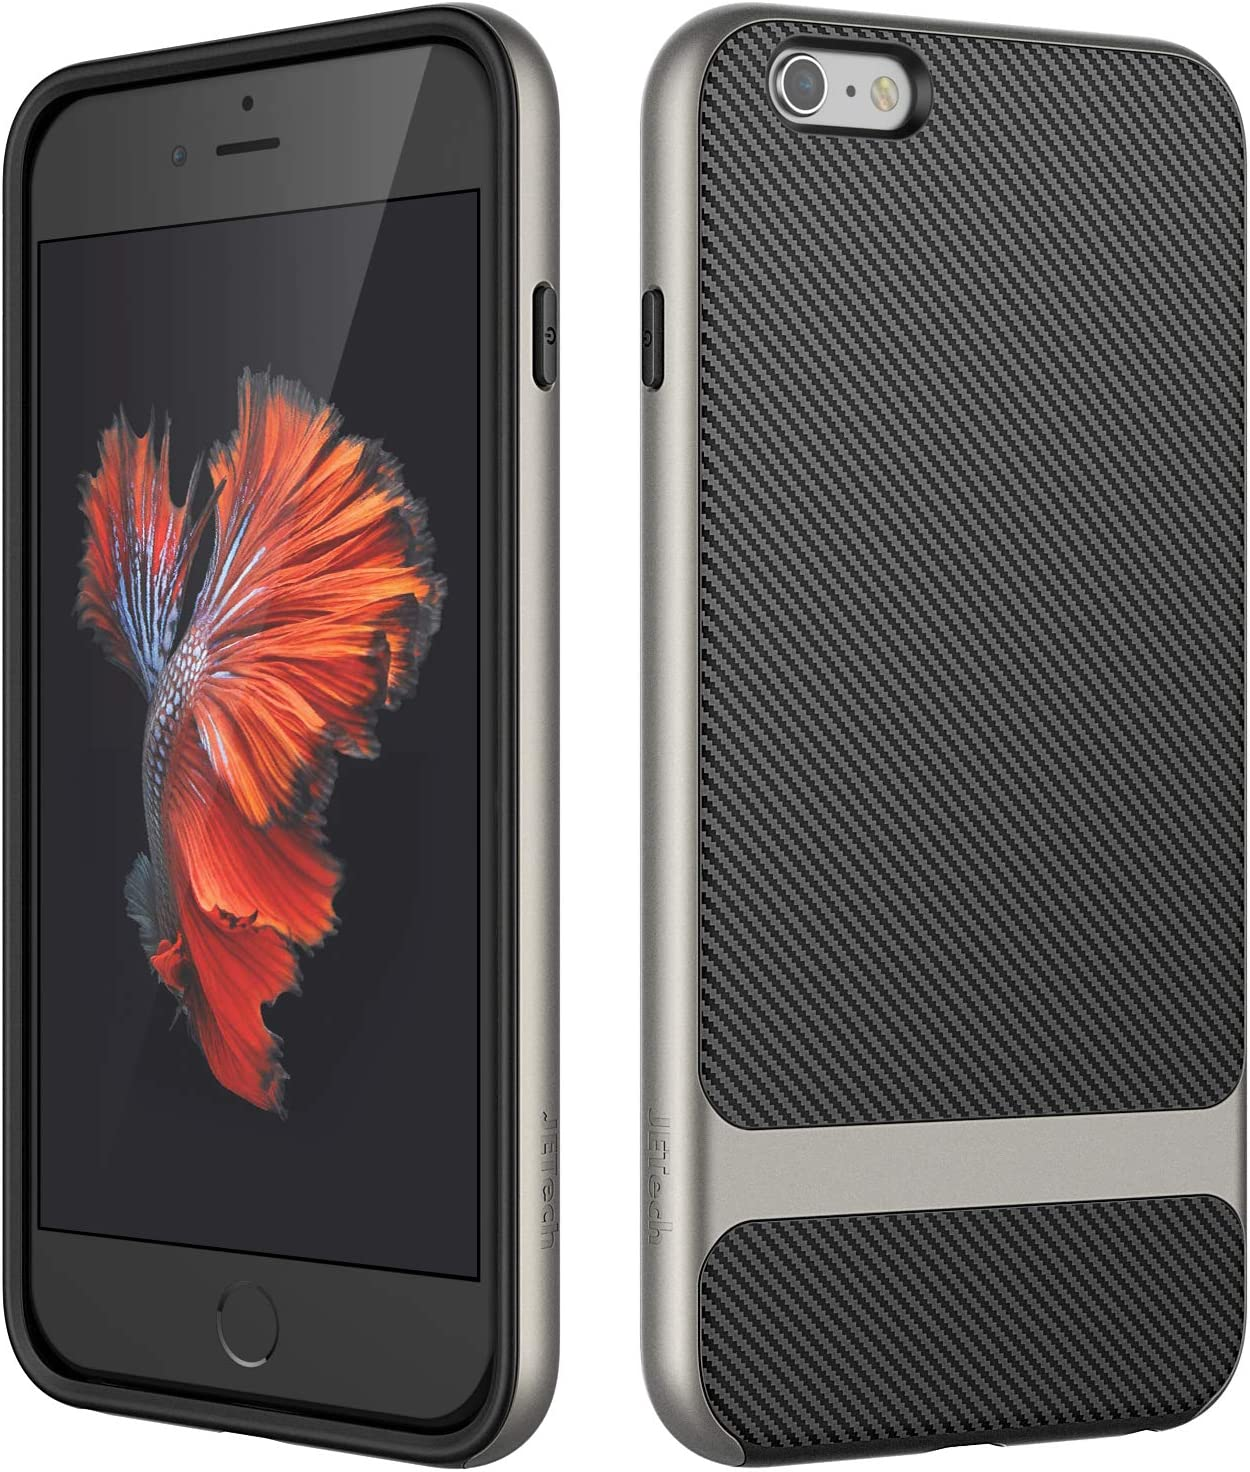 JETech Case for Apple iPhone 6s Plus and iPhone 6 Plus, Slim Protective Cover with Shock-Absorption, Carbon Fiber Design, Grey